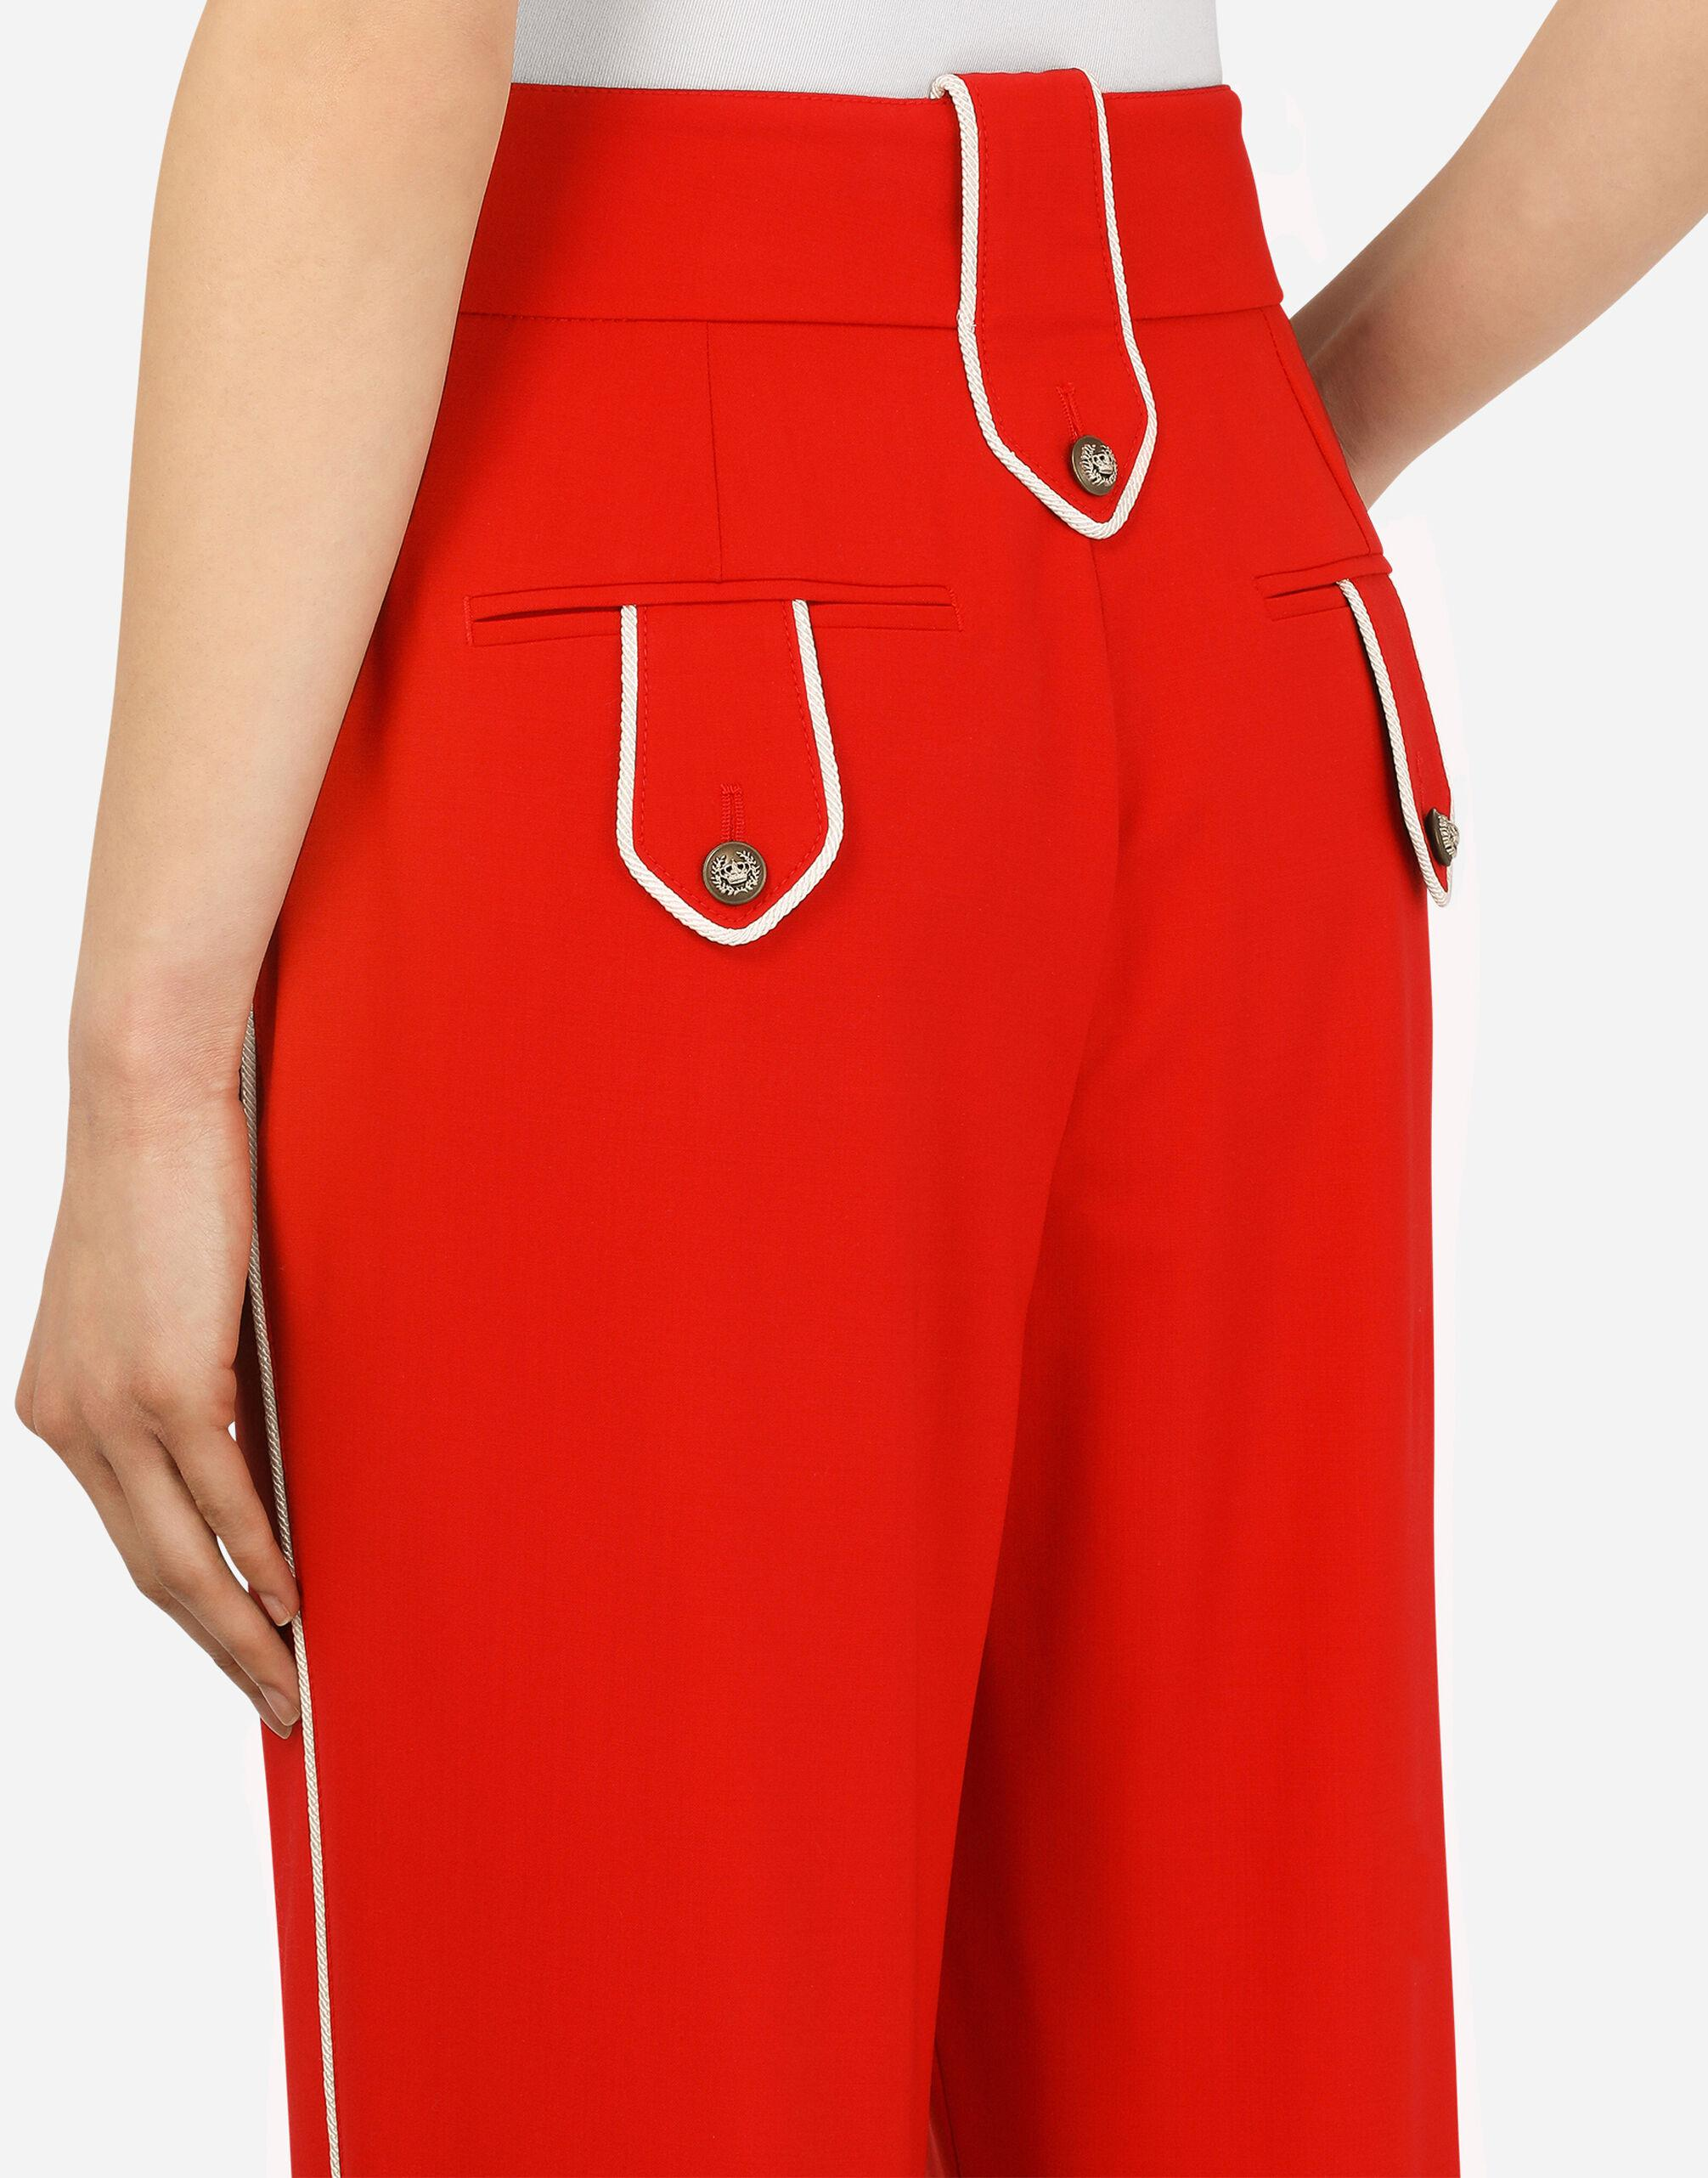 High-waisted woolen pants with heraldic buttons 5